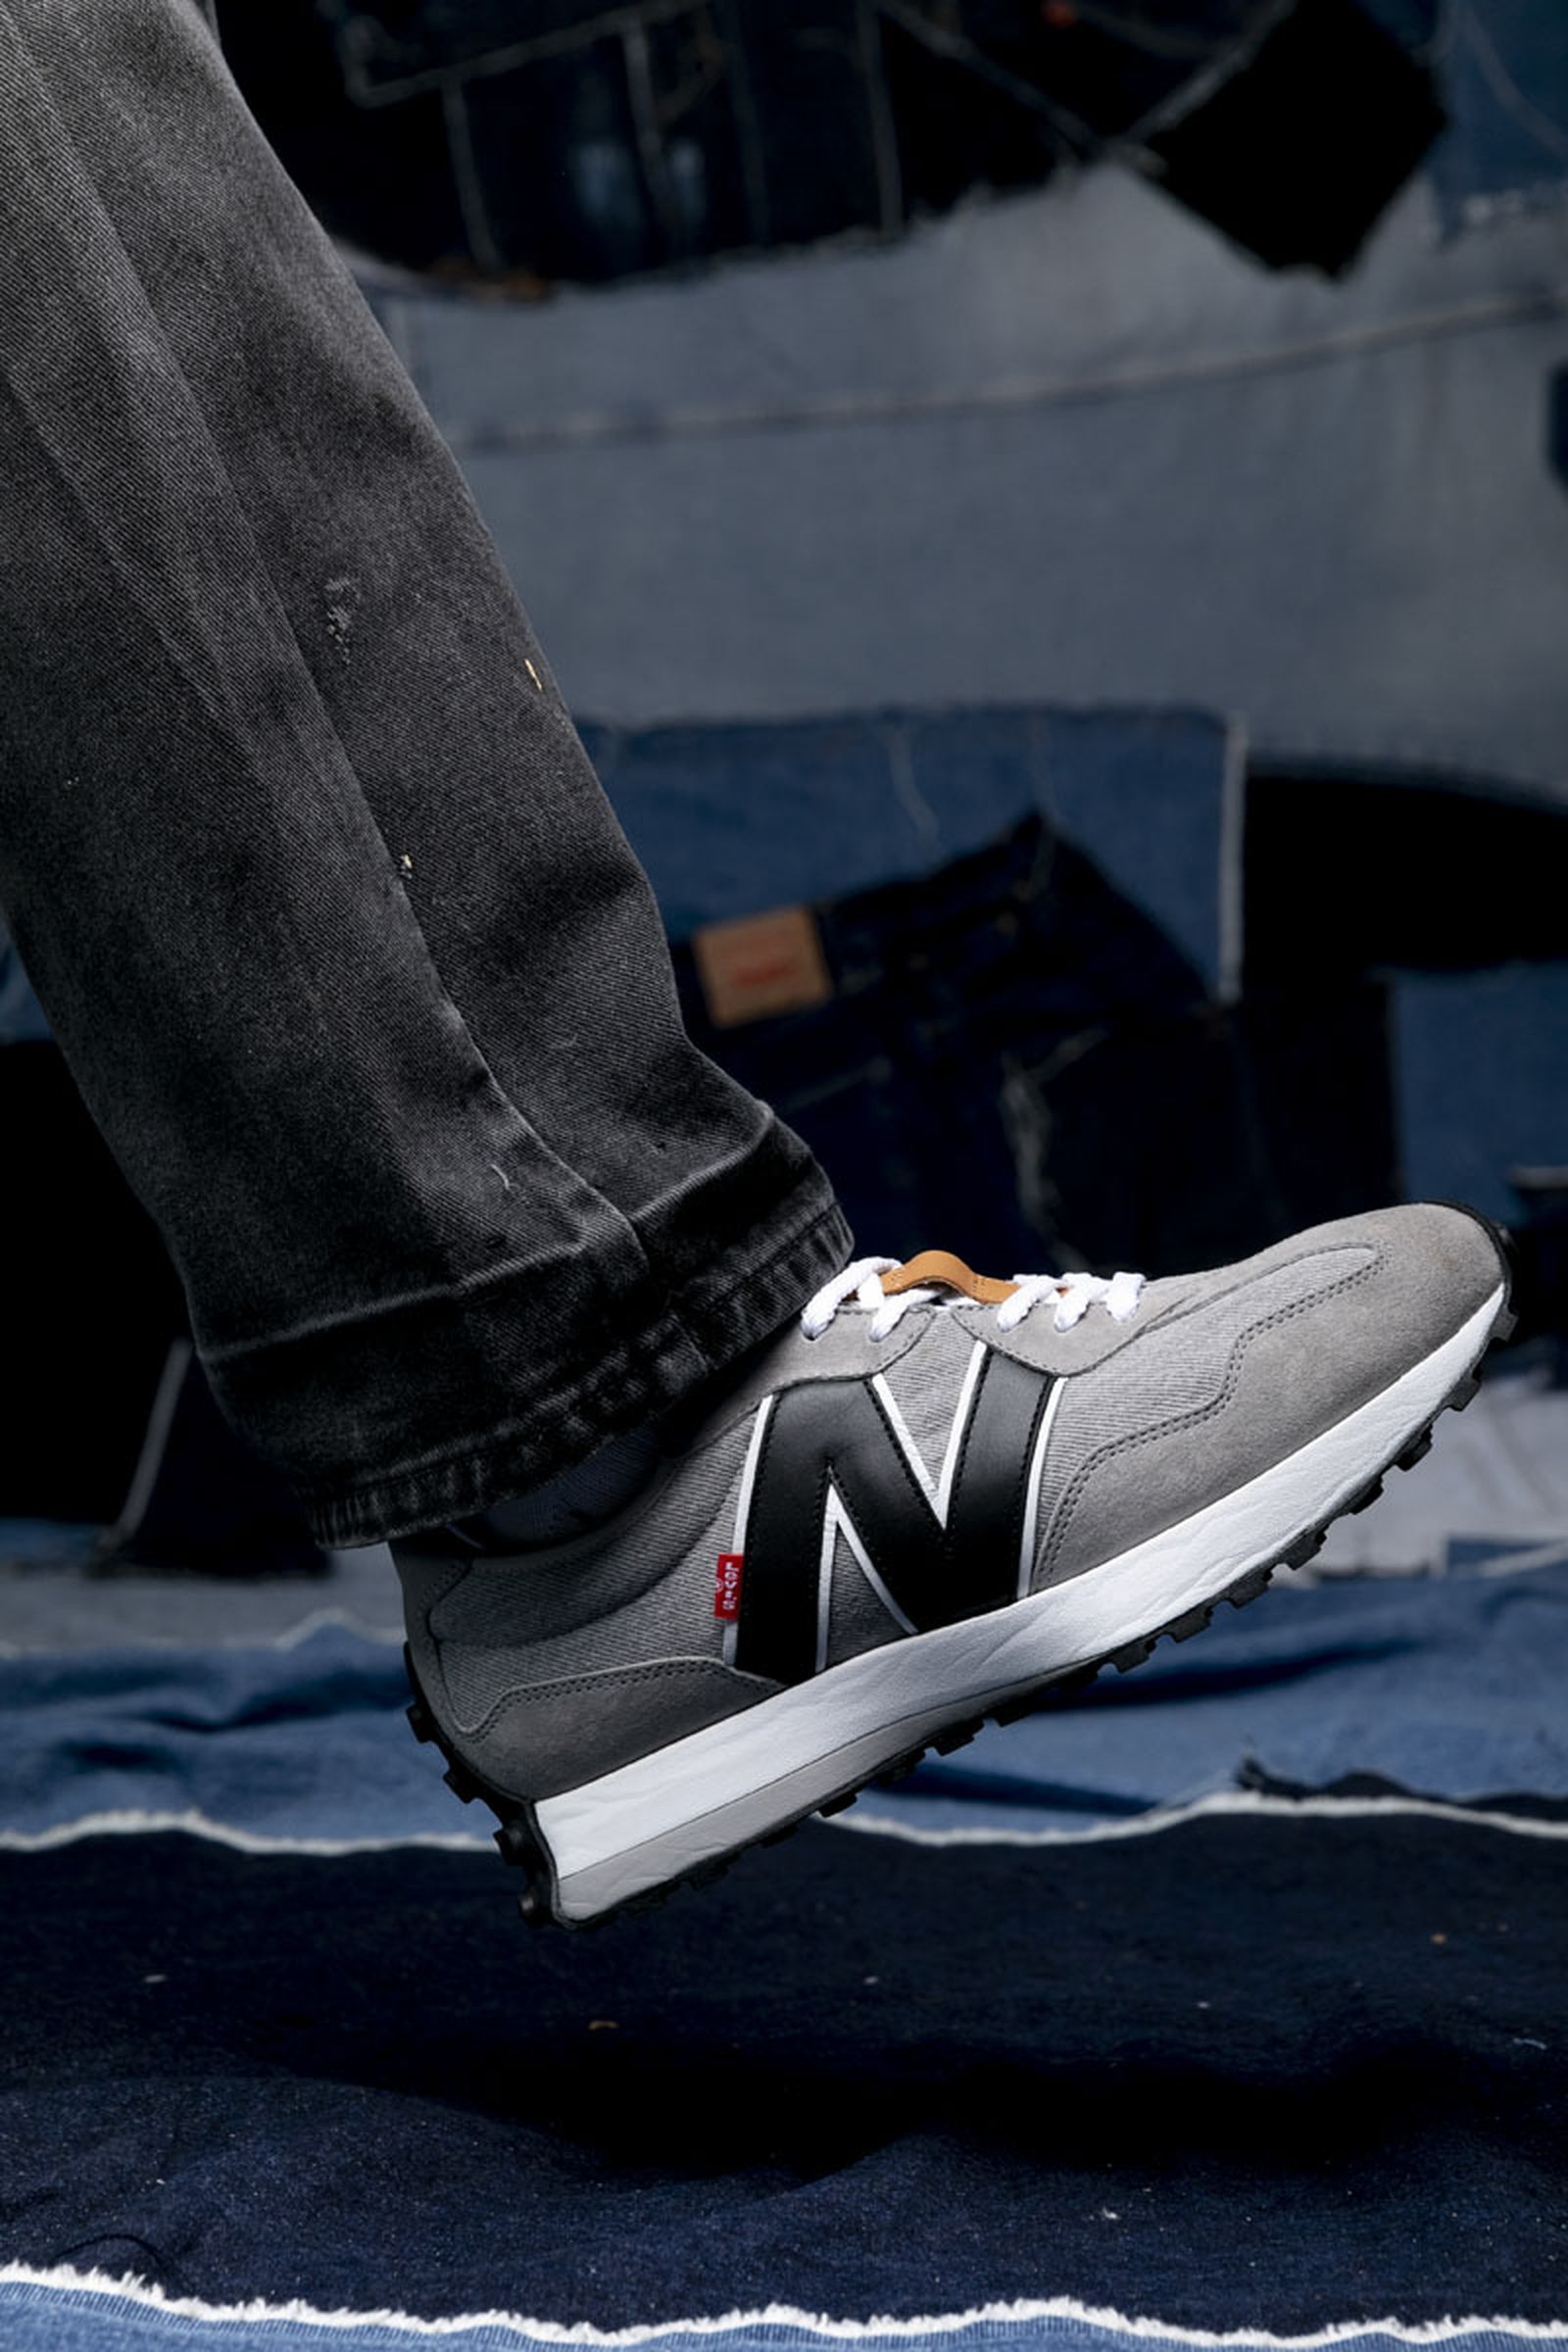 levis-new-balance-327-release-date-price-09